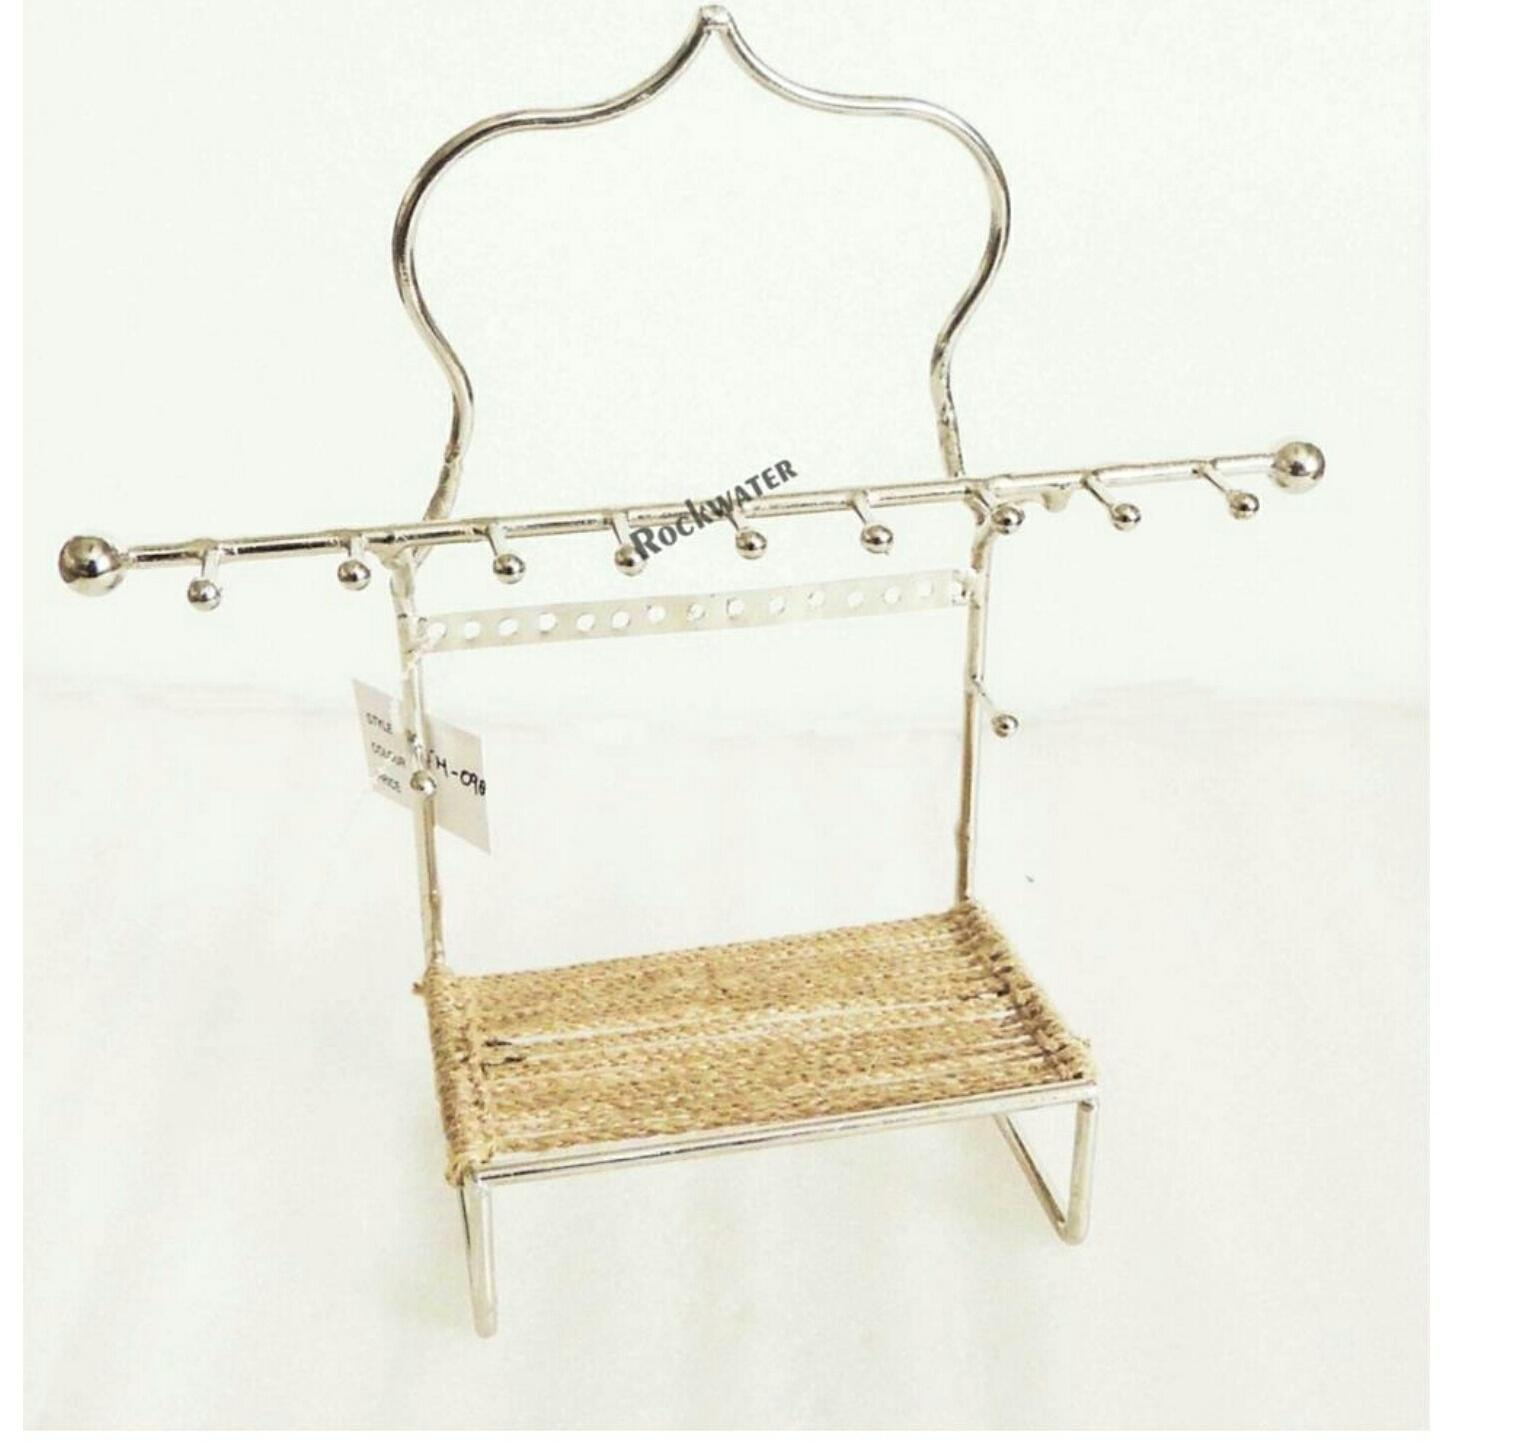 macrame mehal arch jwellery holder